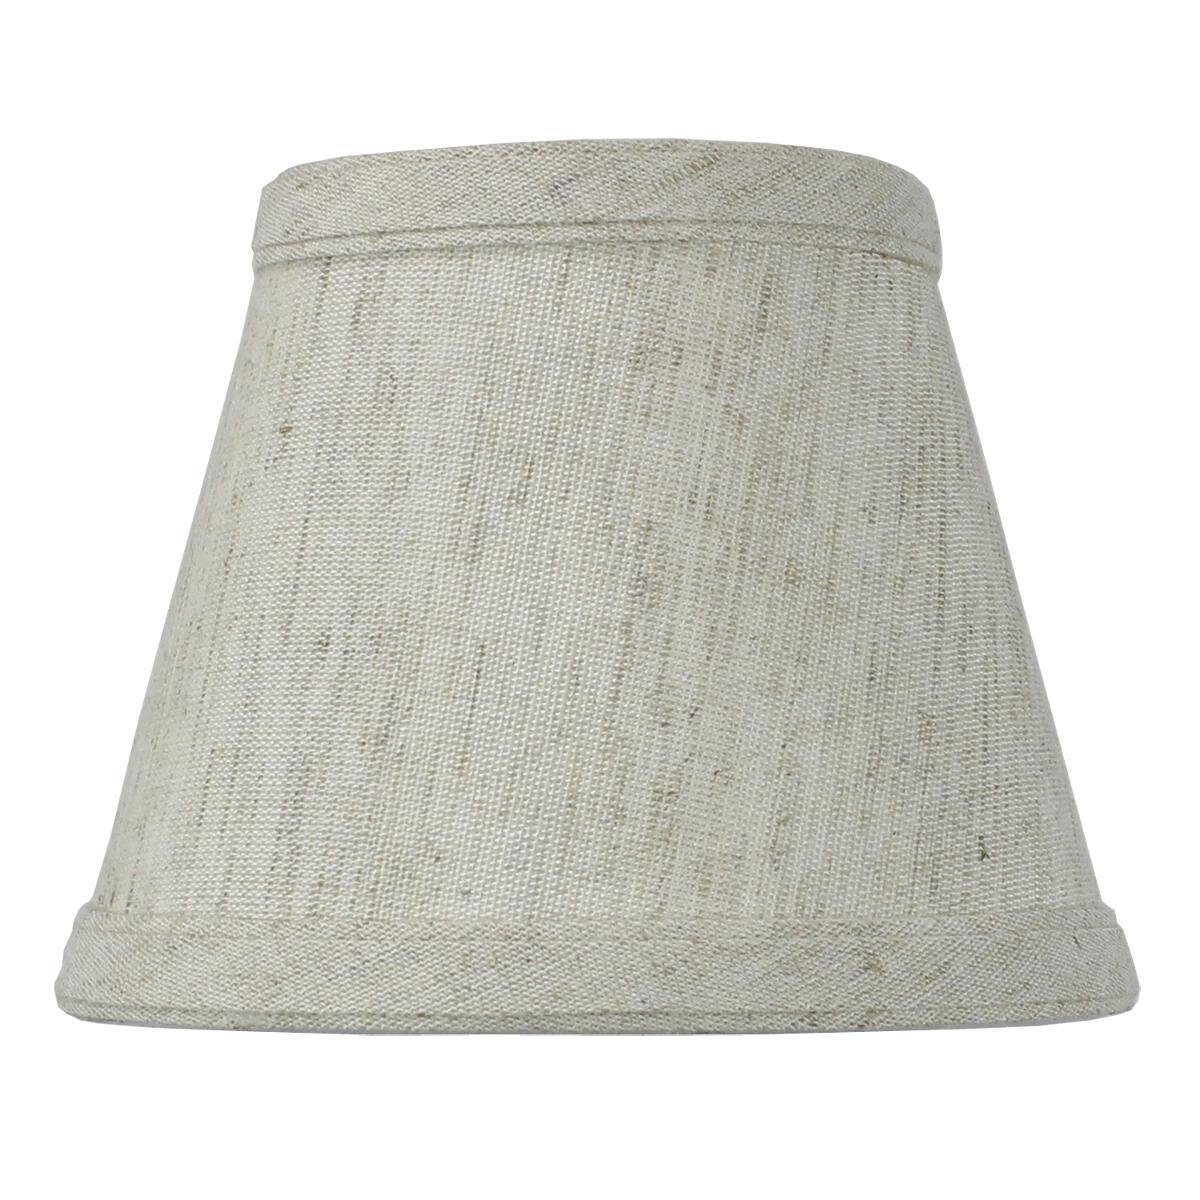 3x5x4 Off-White Clip-on Candlelabra Shade By Home Concept - Perfect for chandeliers, foyer lights, and wall sconces -Small, Textured Oatmeal